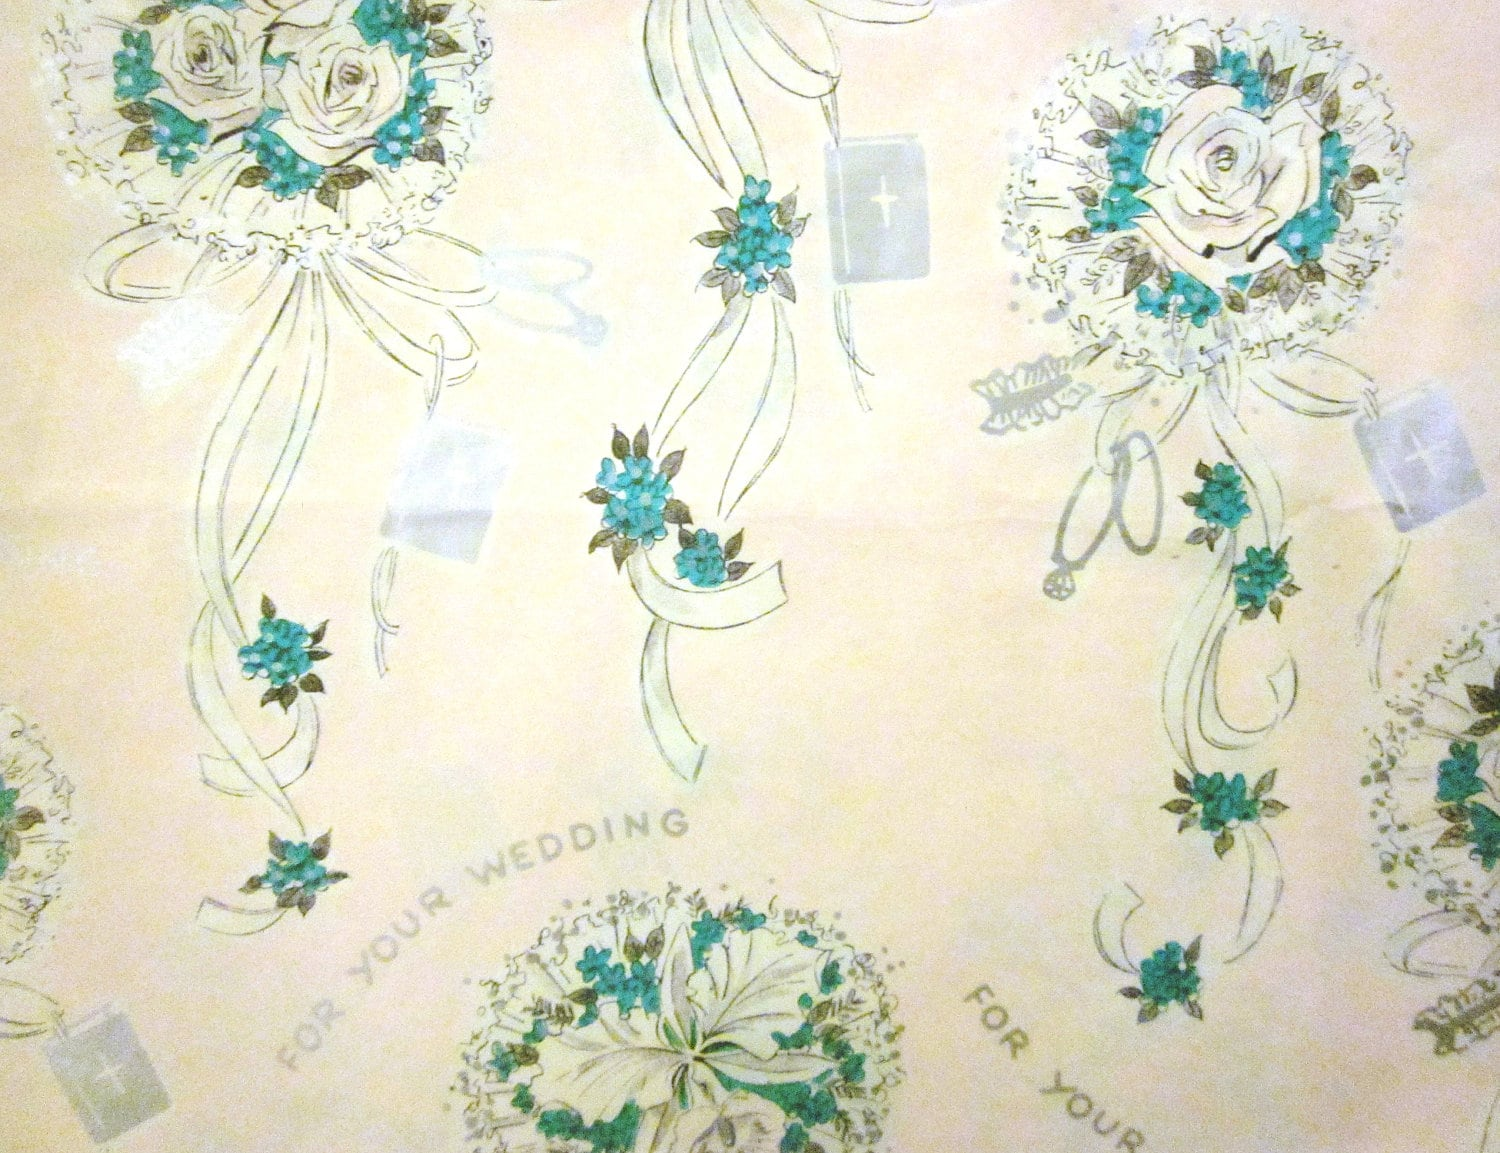 Wedding Gift Paper: Vintage Wrapping Paper Unused Christian Wedding Gift Wrap